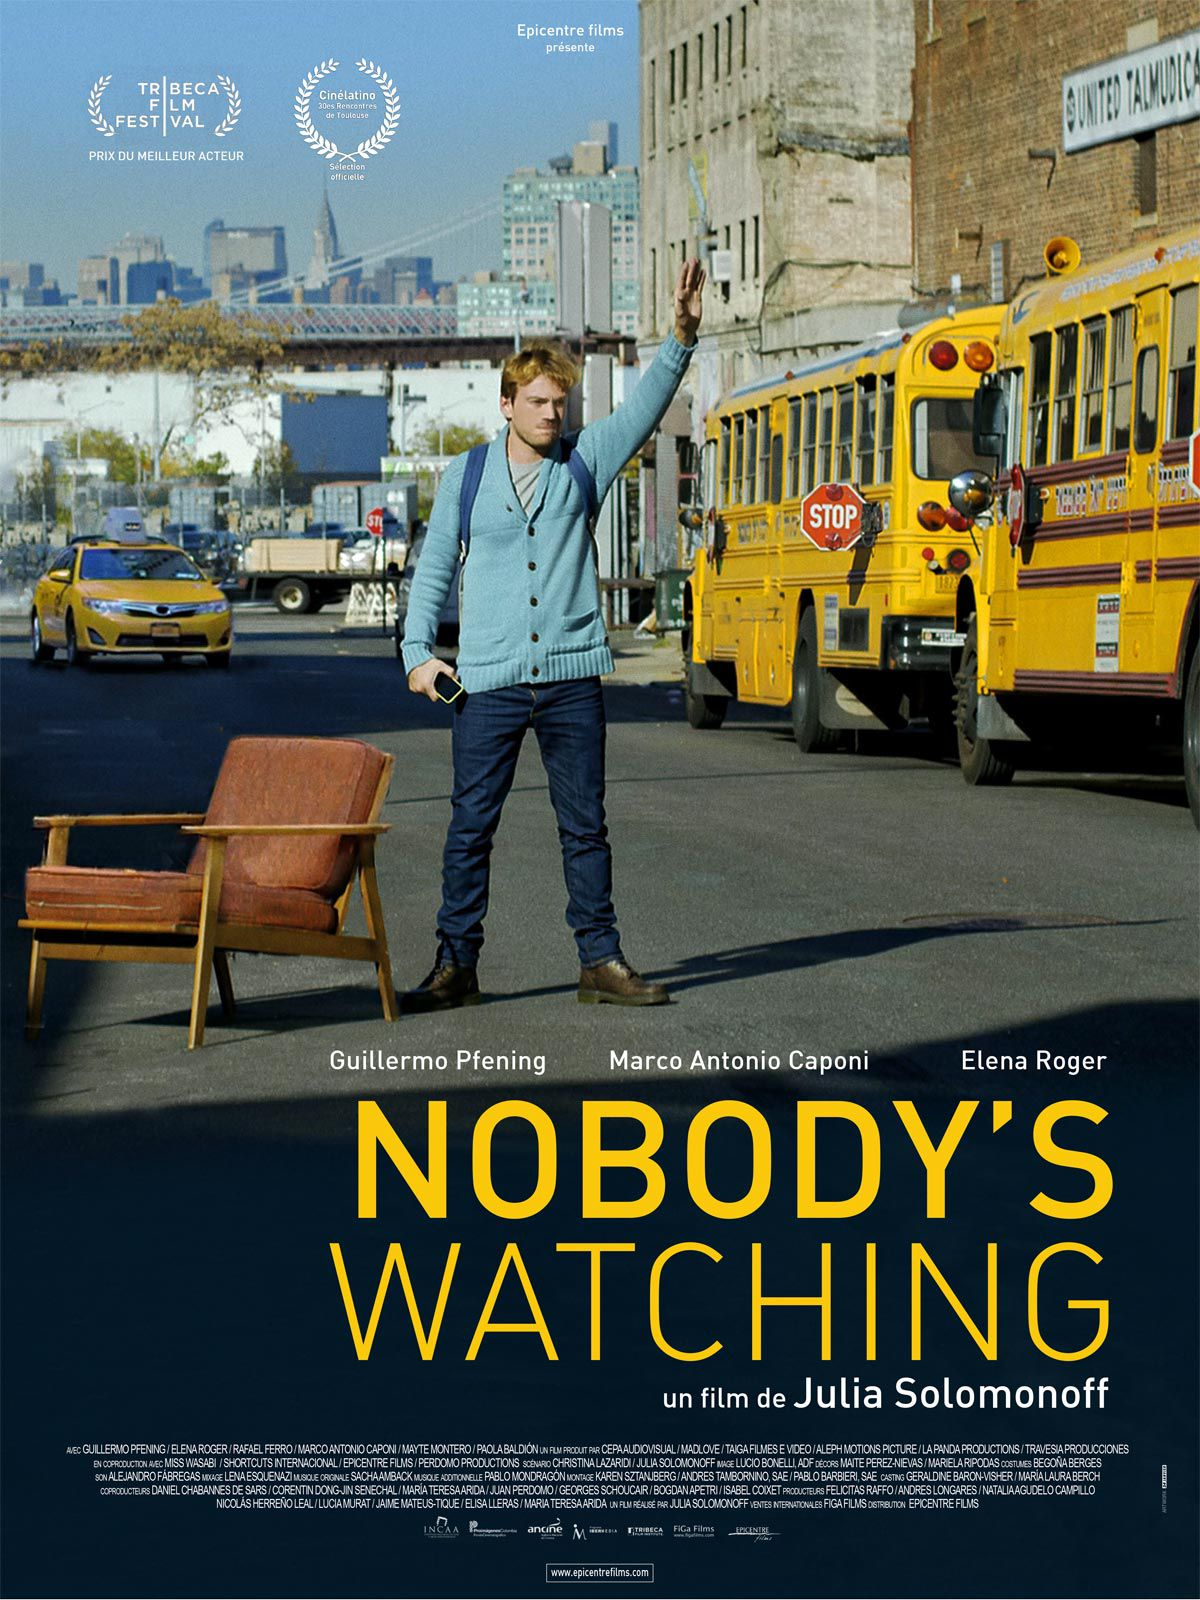 Nobody's Watching - Film (2018) streaming VF gratuit complet